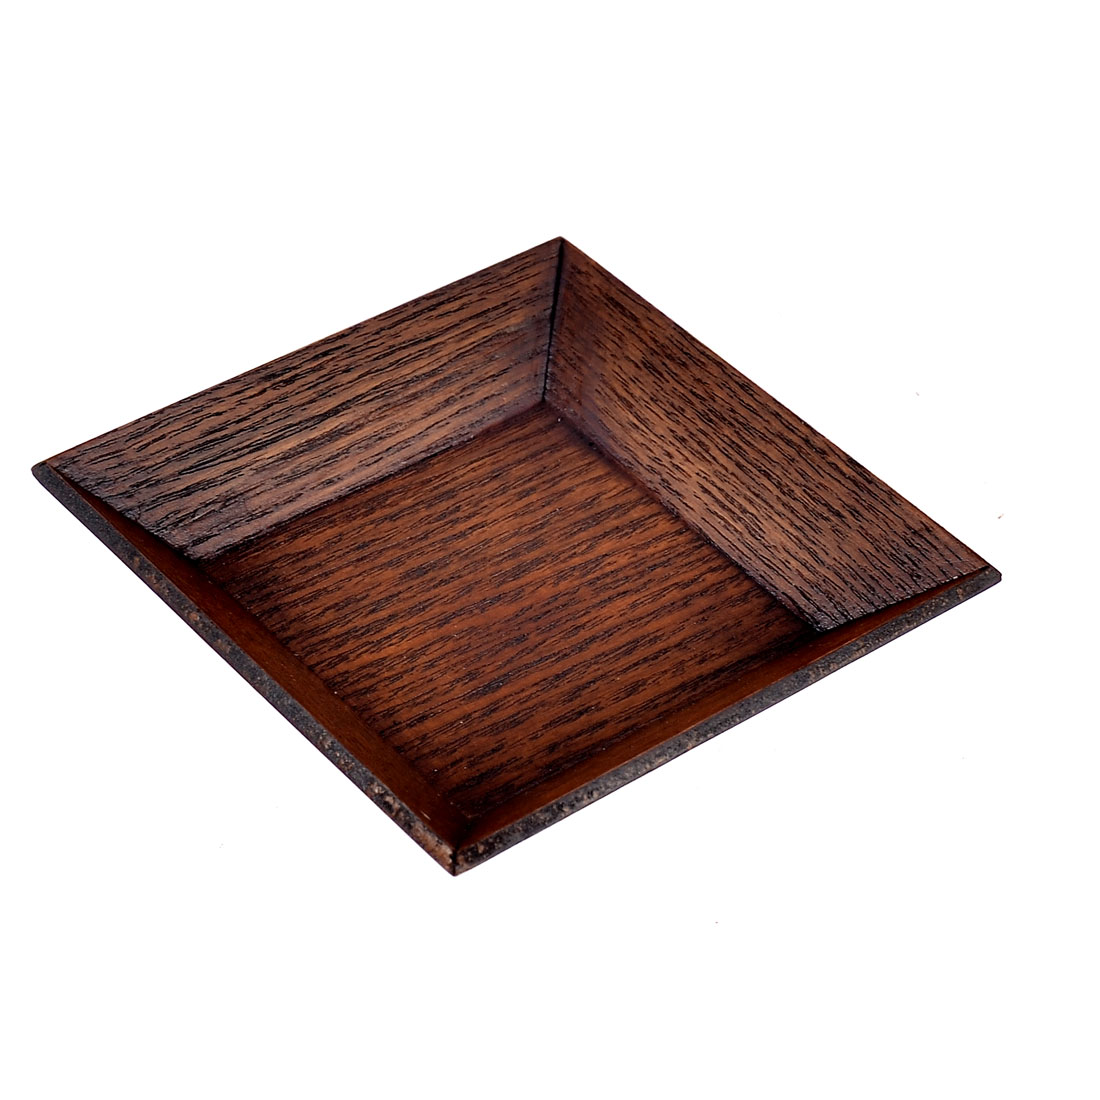 Kitchen Wood Square Shaped Appetizer Pickle Dish Plate Container Brown